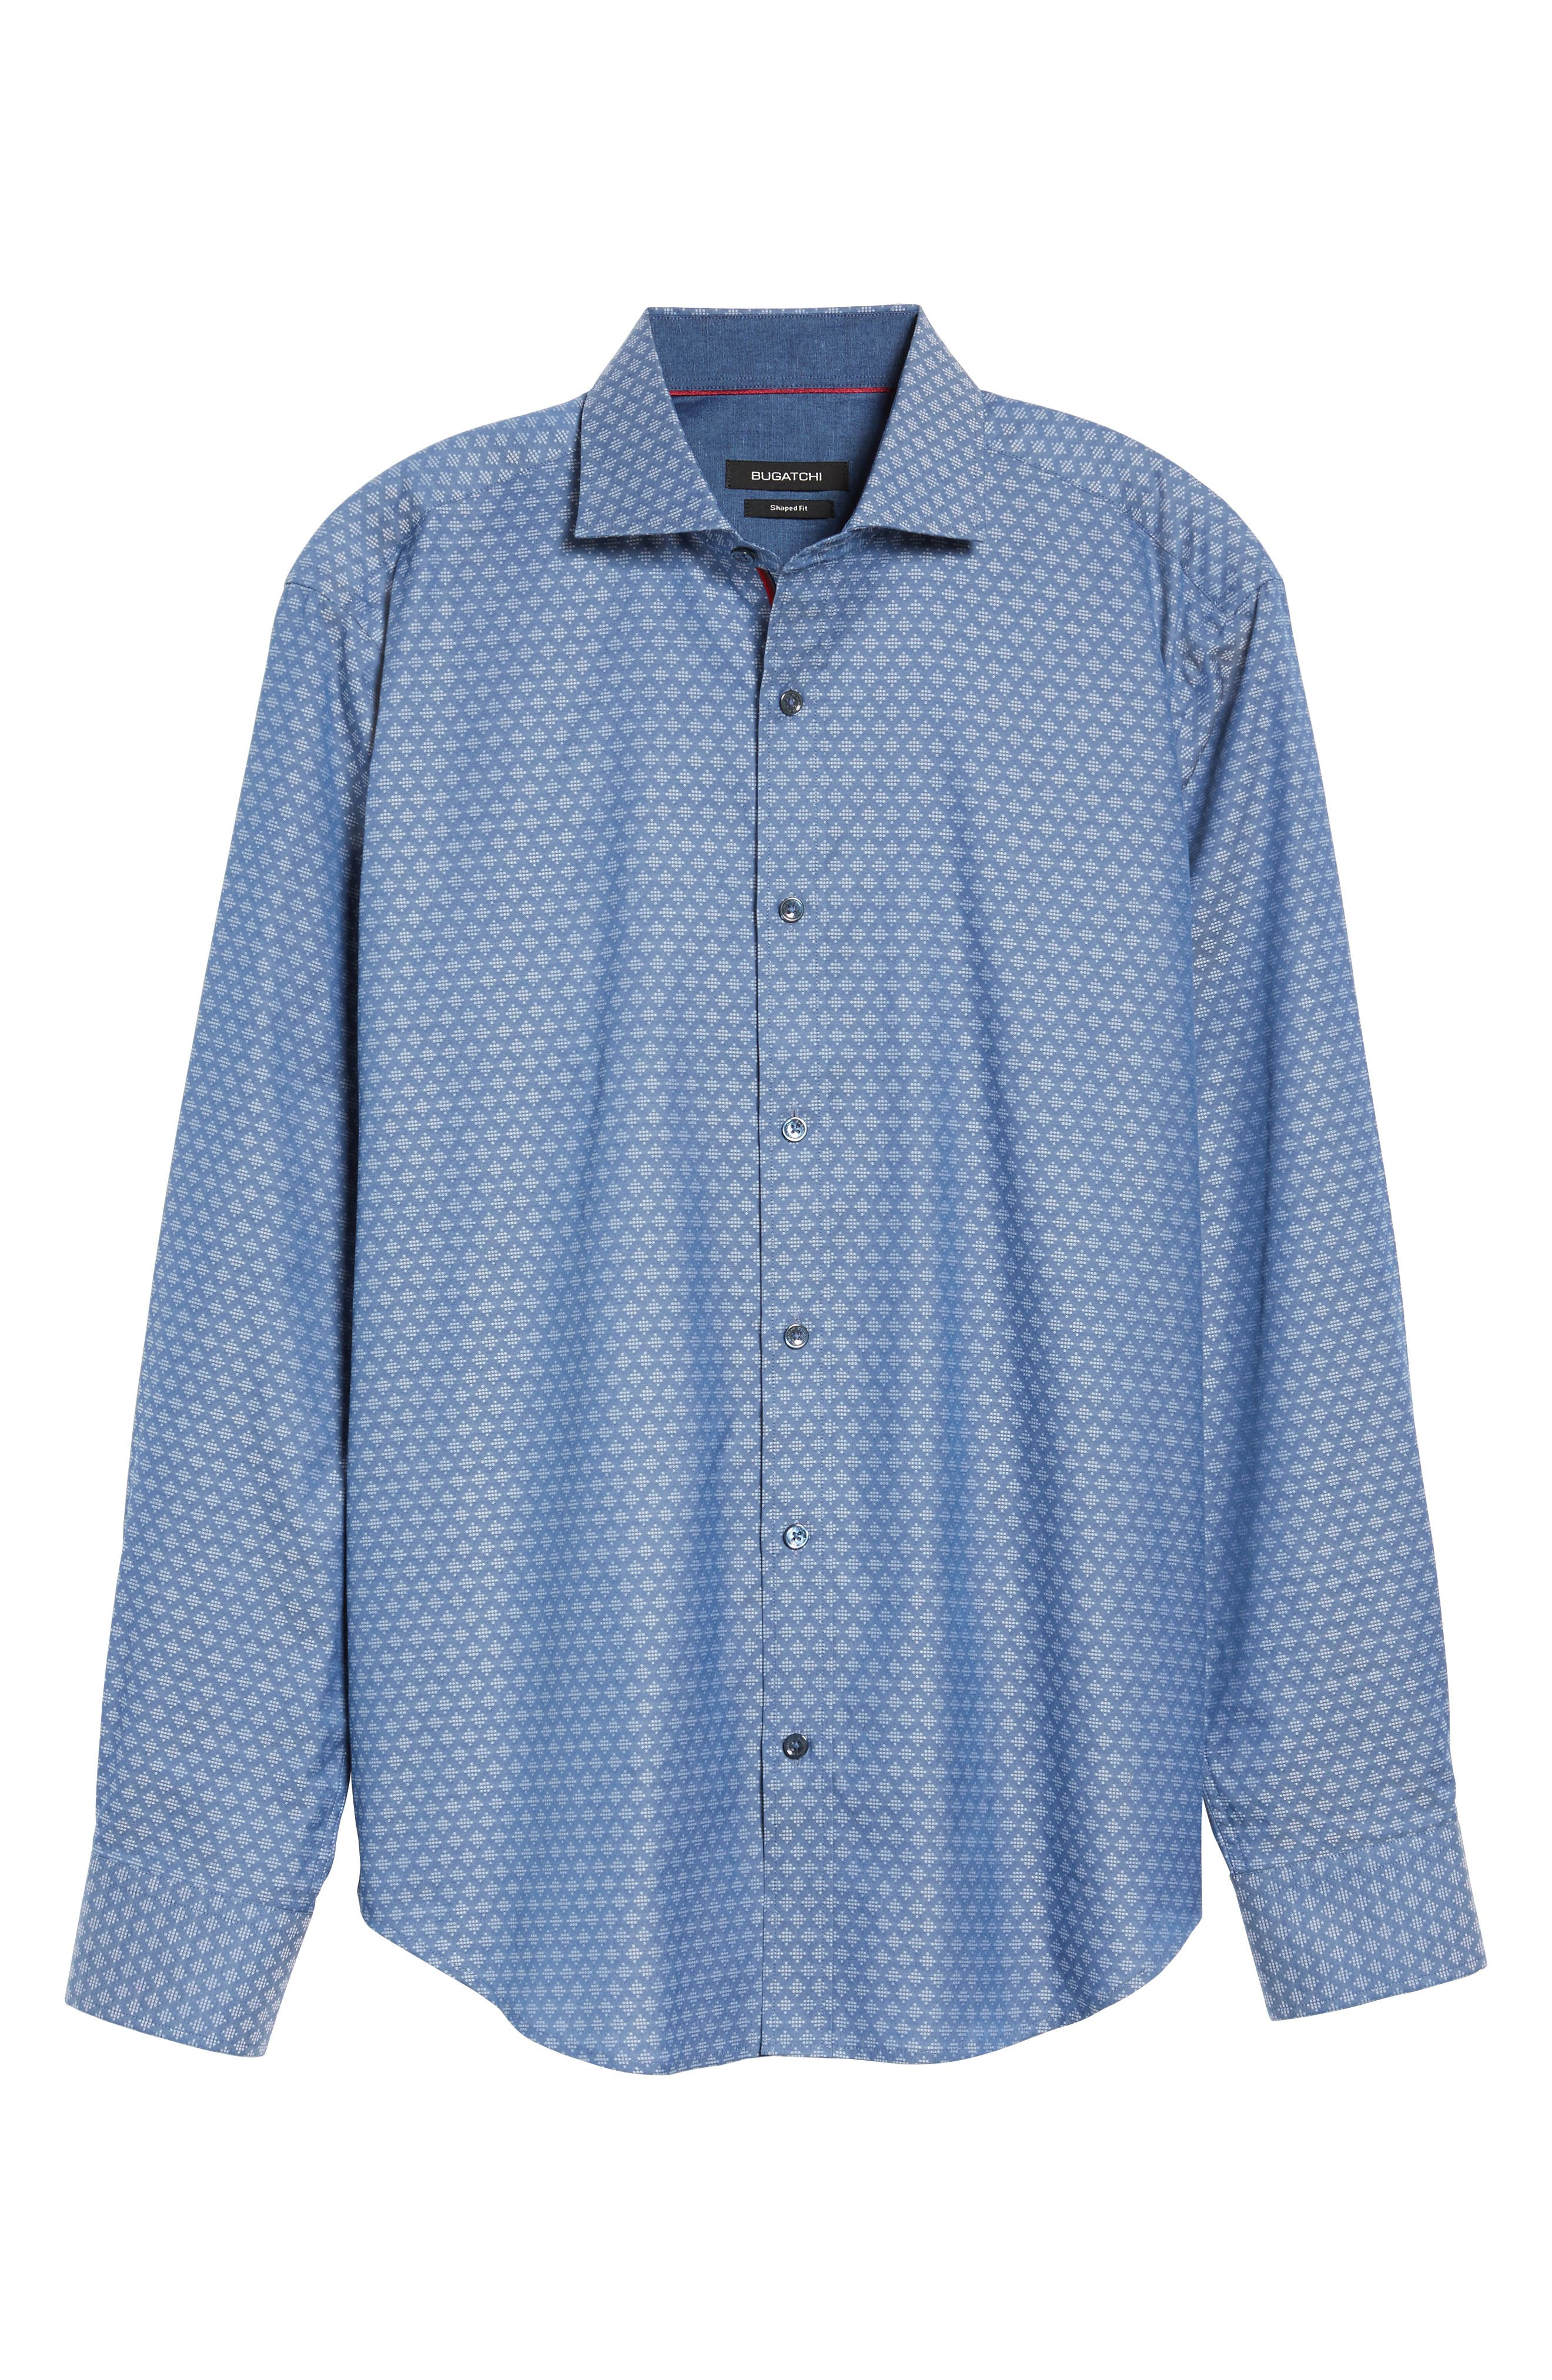 Shaped Fit Dobby Diamond Sport Shirt,                             Alternate thumbnail 6, color,                             030